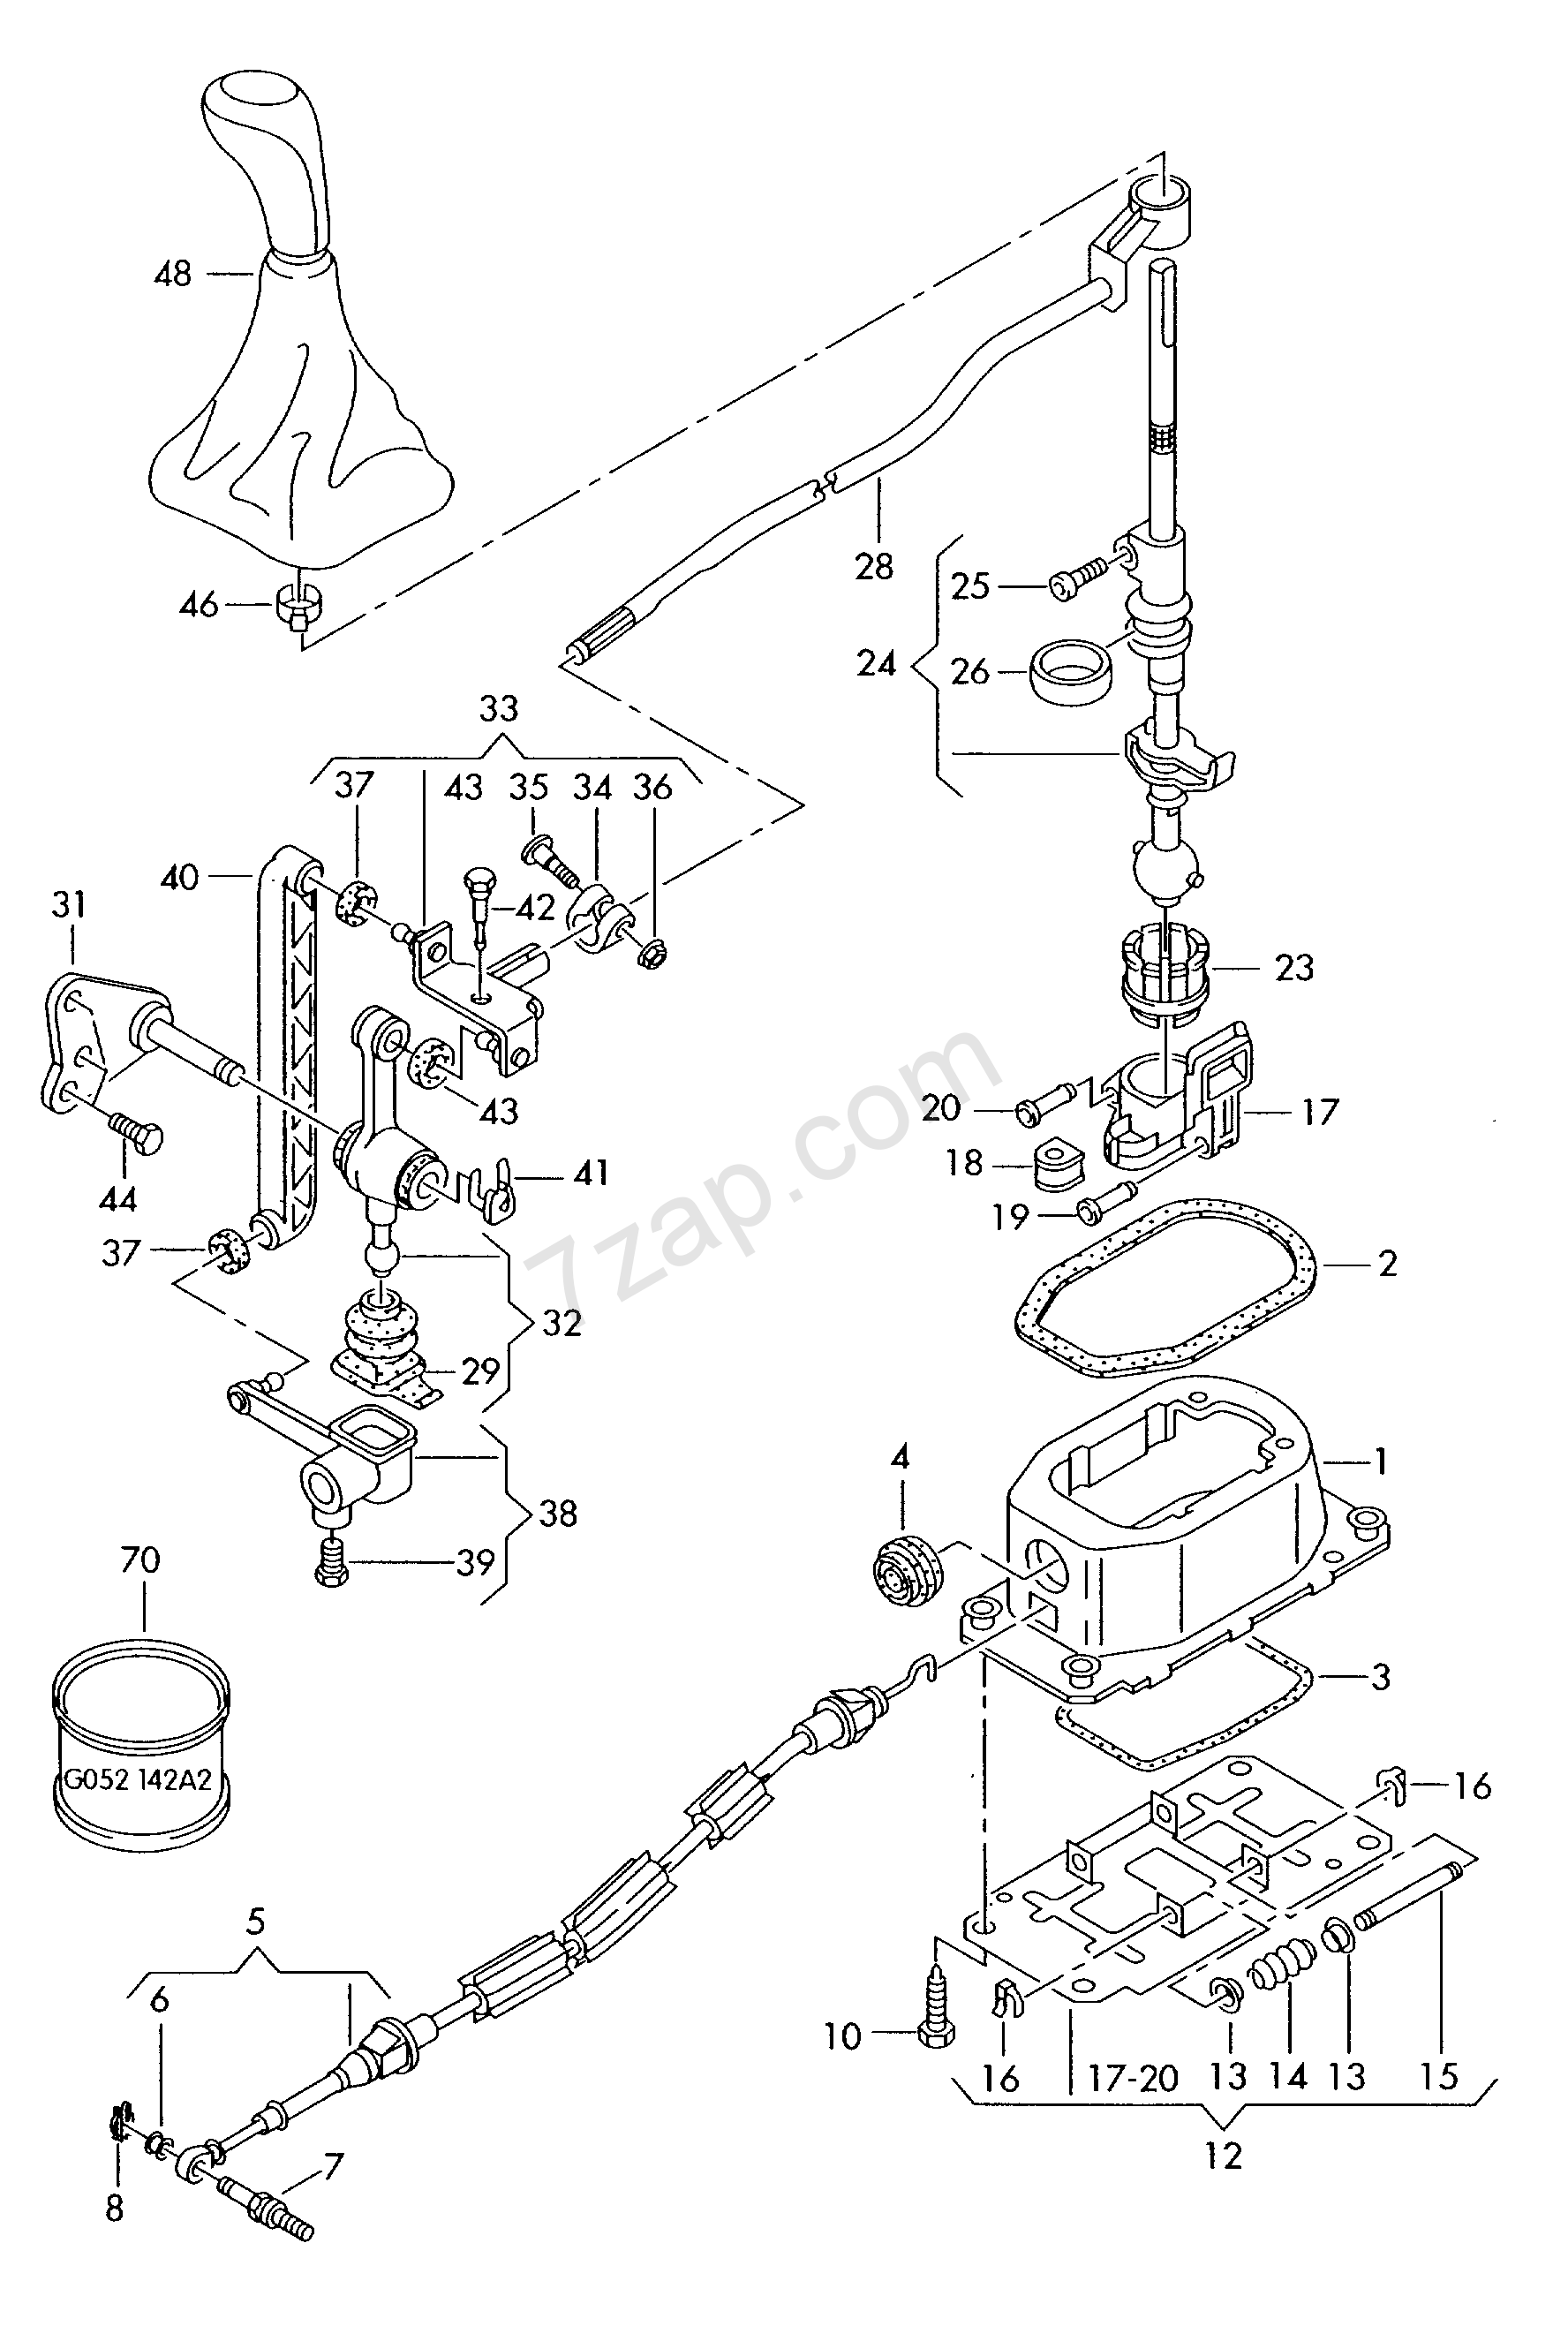 Selector Mechanism For Engine Code Letters Lupo Lupo 3l Tdi Lu Year Volkswagen Europa